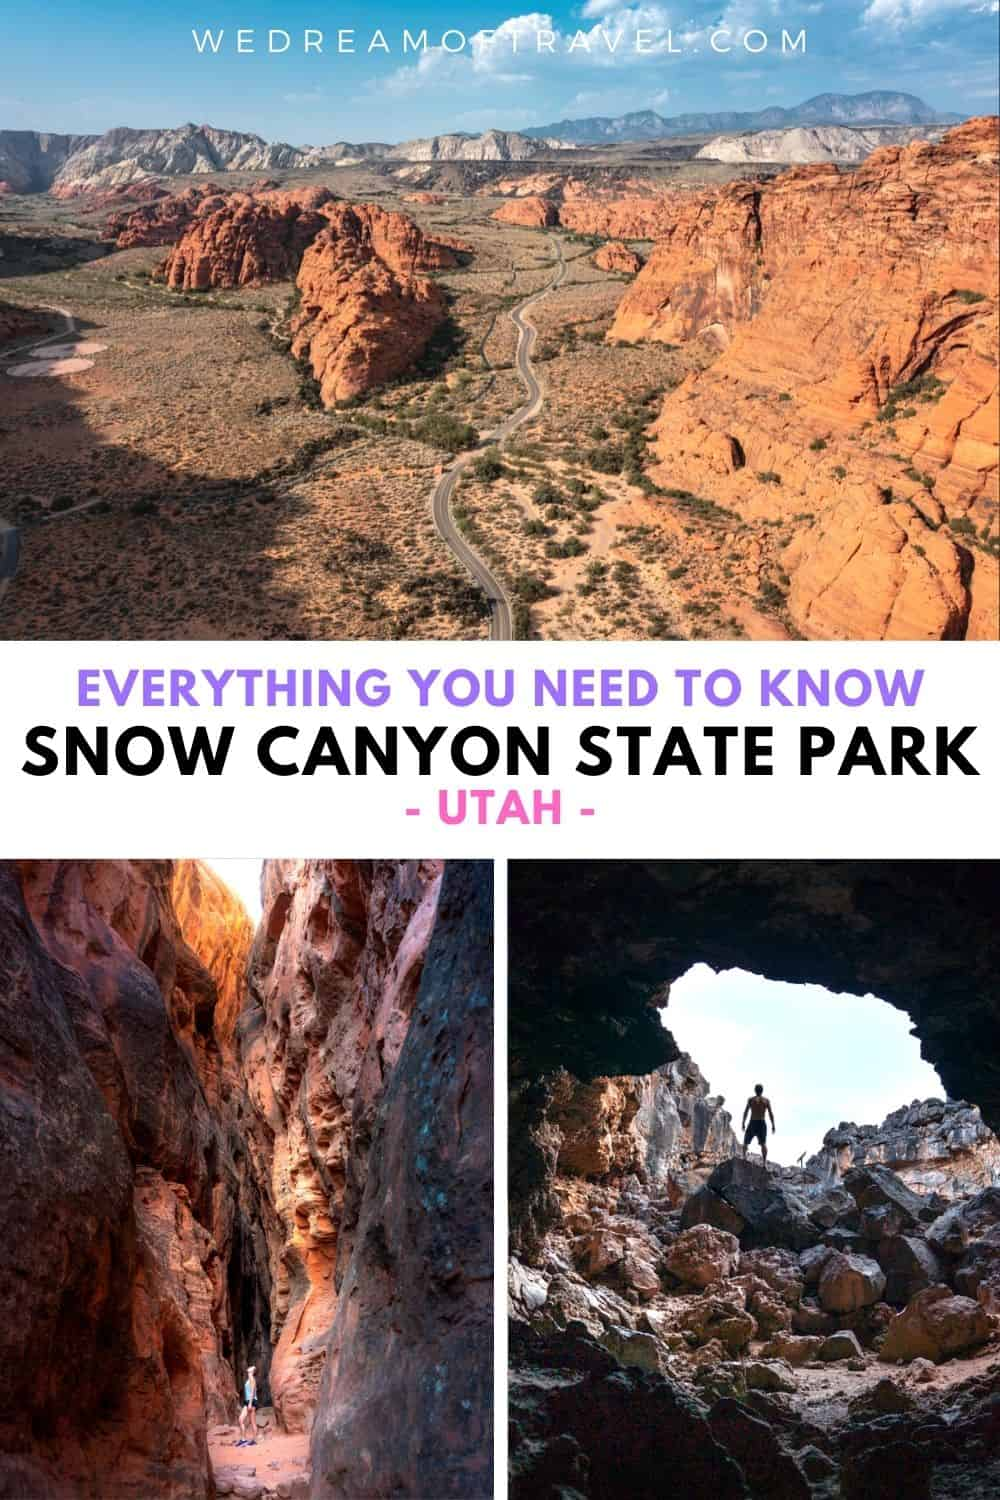 While visiting Southern Utah, don't miss the spectacular Snow Canyon State Park.  With incredible hikes through sand dunes, slot canyons and petrified sand dunes, you're guaranteed to find plenty of beautiful scenes and photography opportunities.